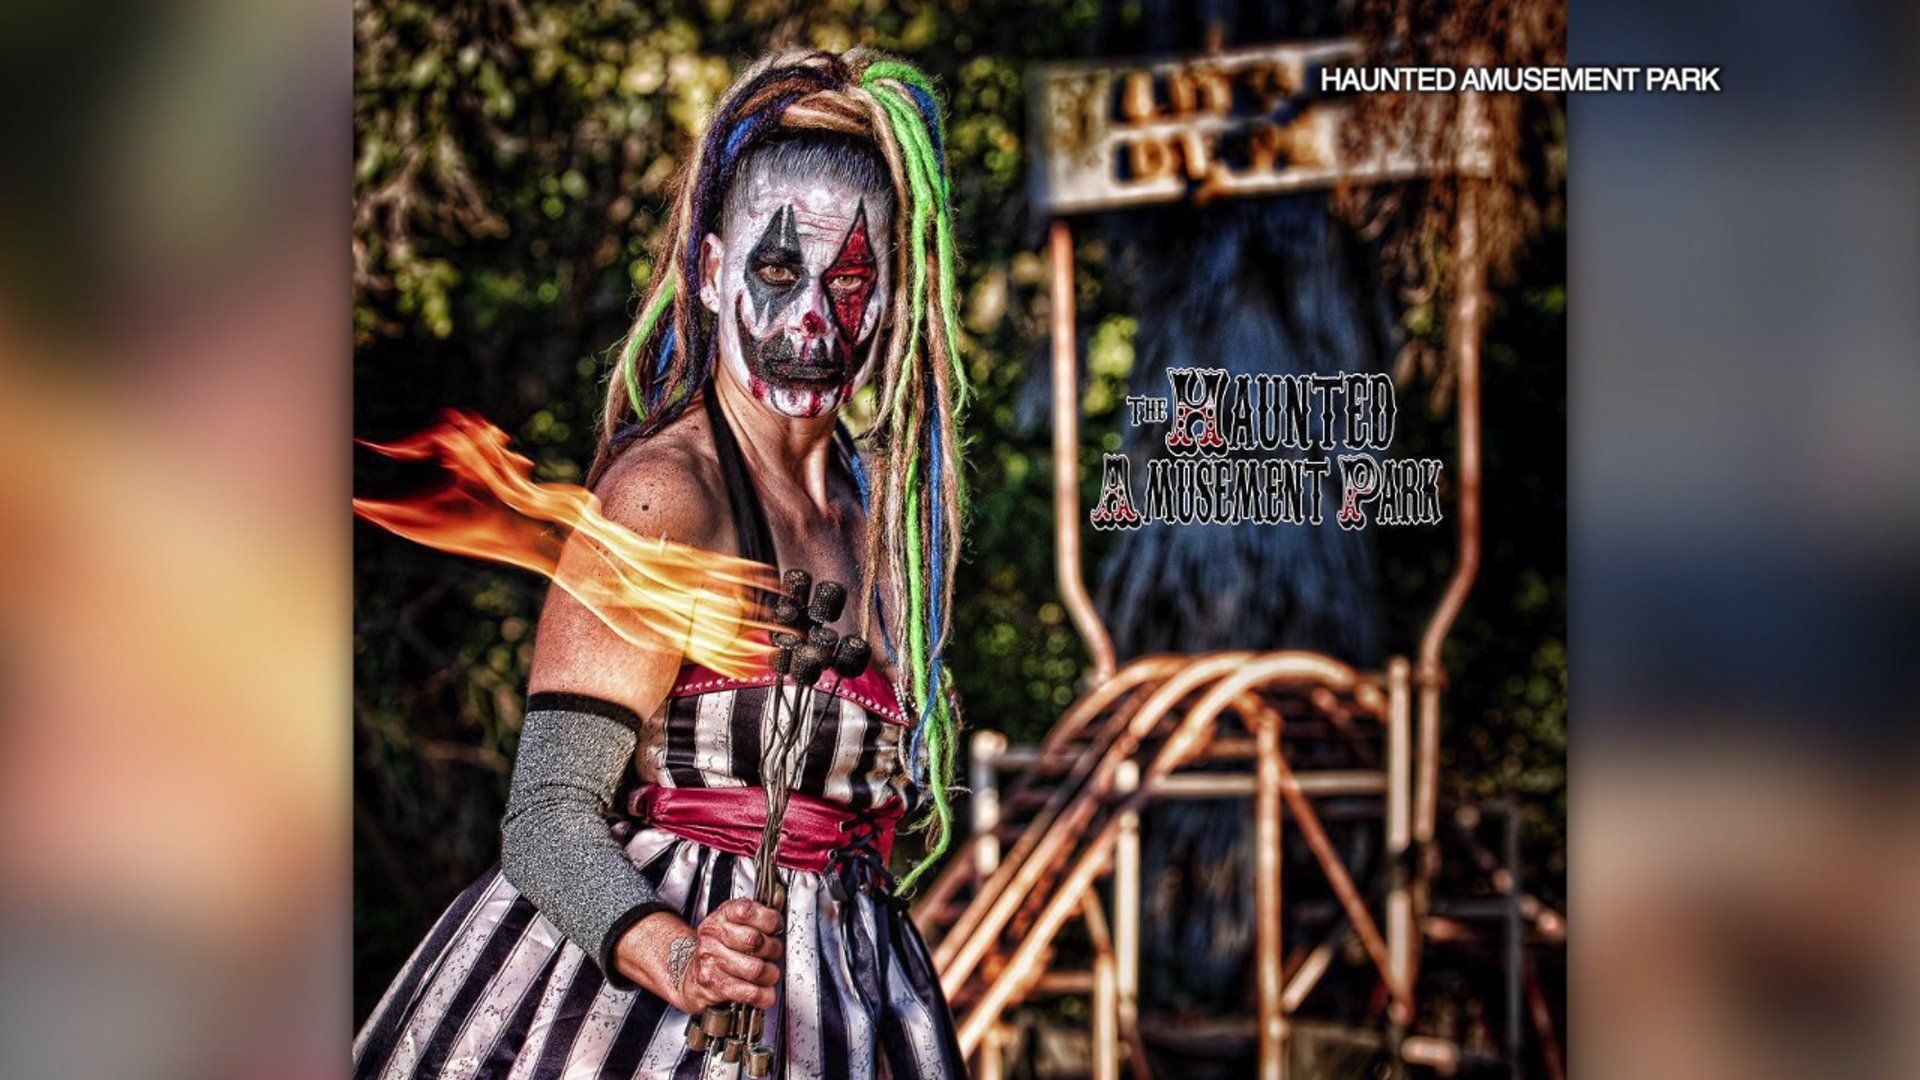 Abandoned Amusement Park Transformed Into Haunted Trail Fox 5 San Diego